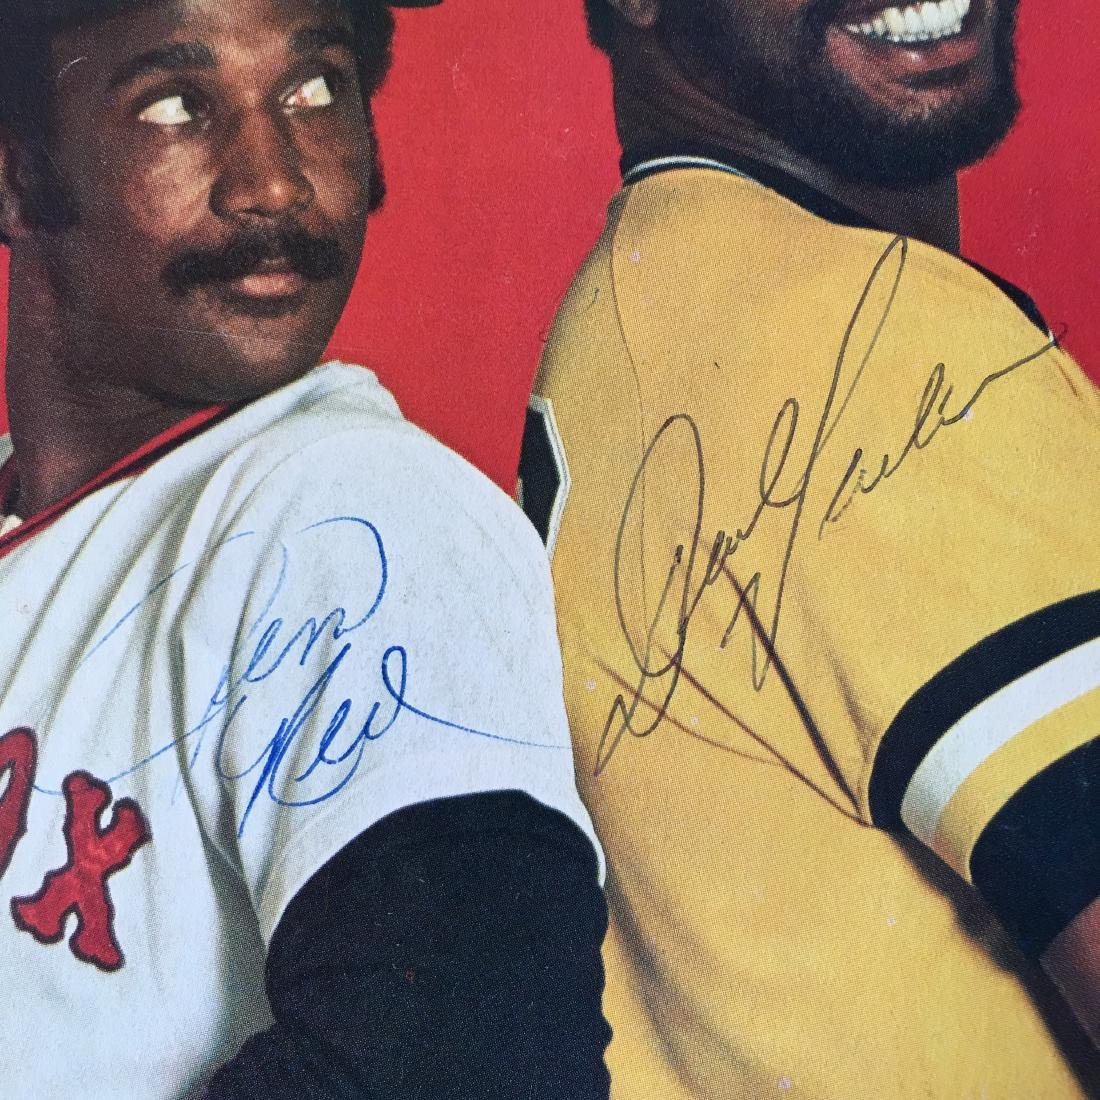 JIM RICE/DAVE PARKER HAND SIGNED PHOTO W/COA - 2